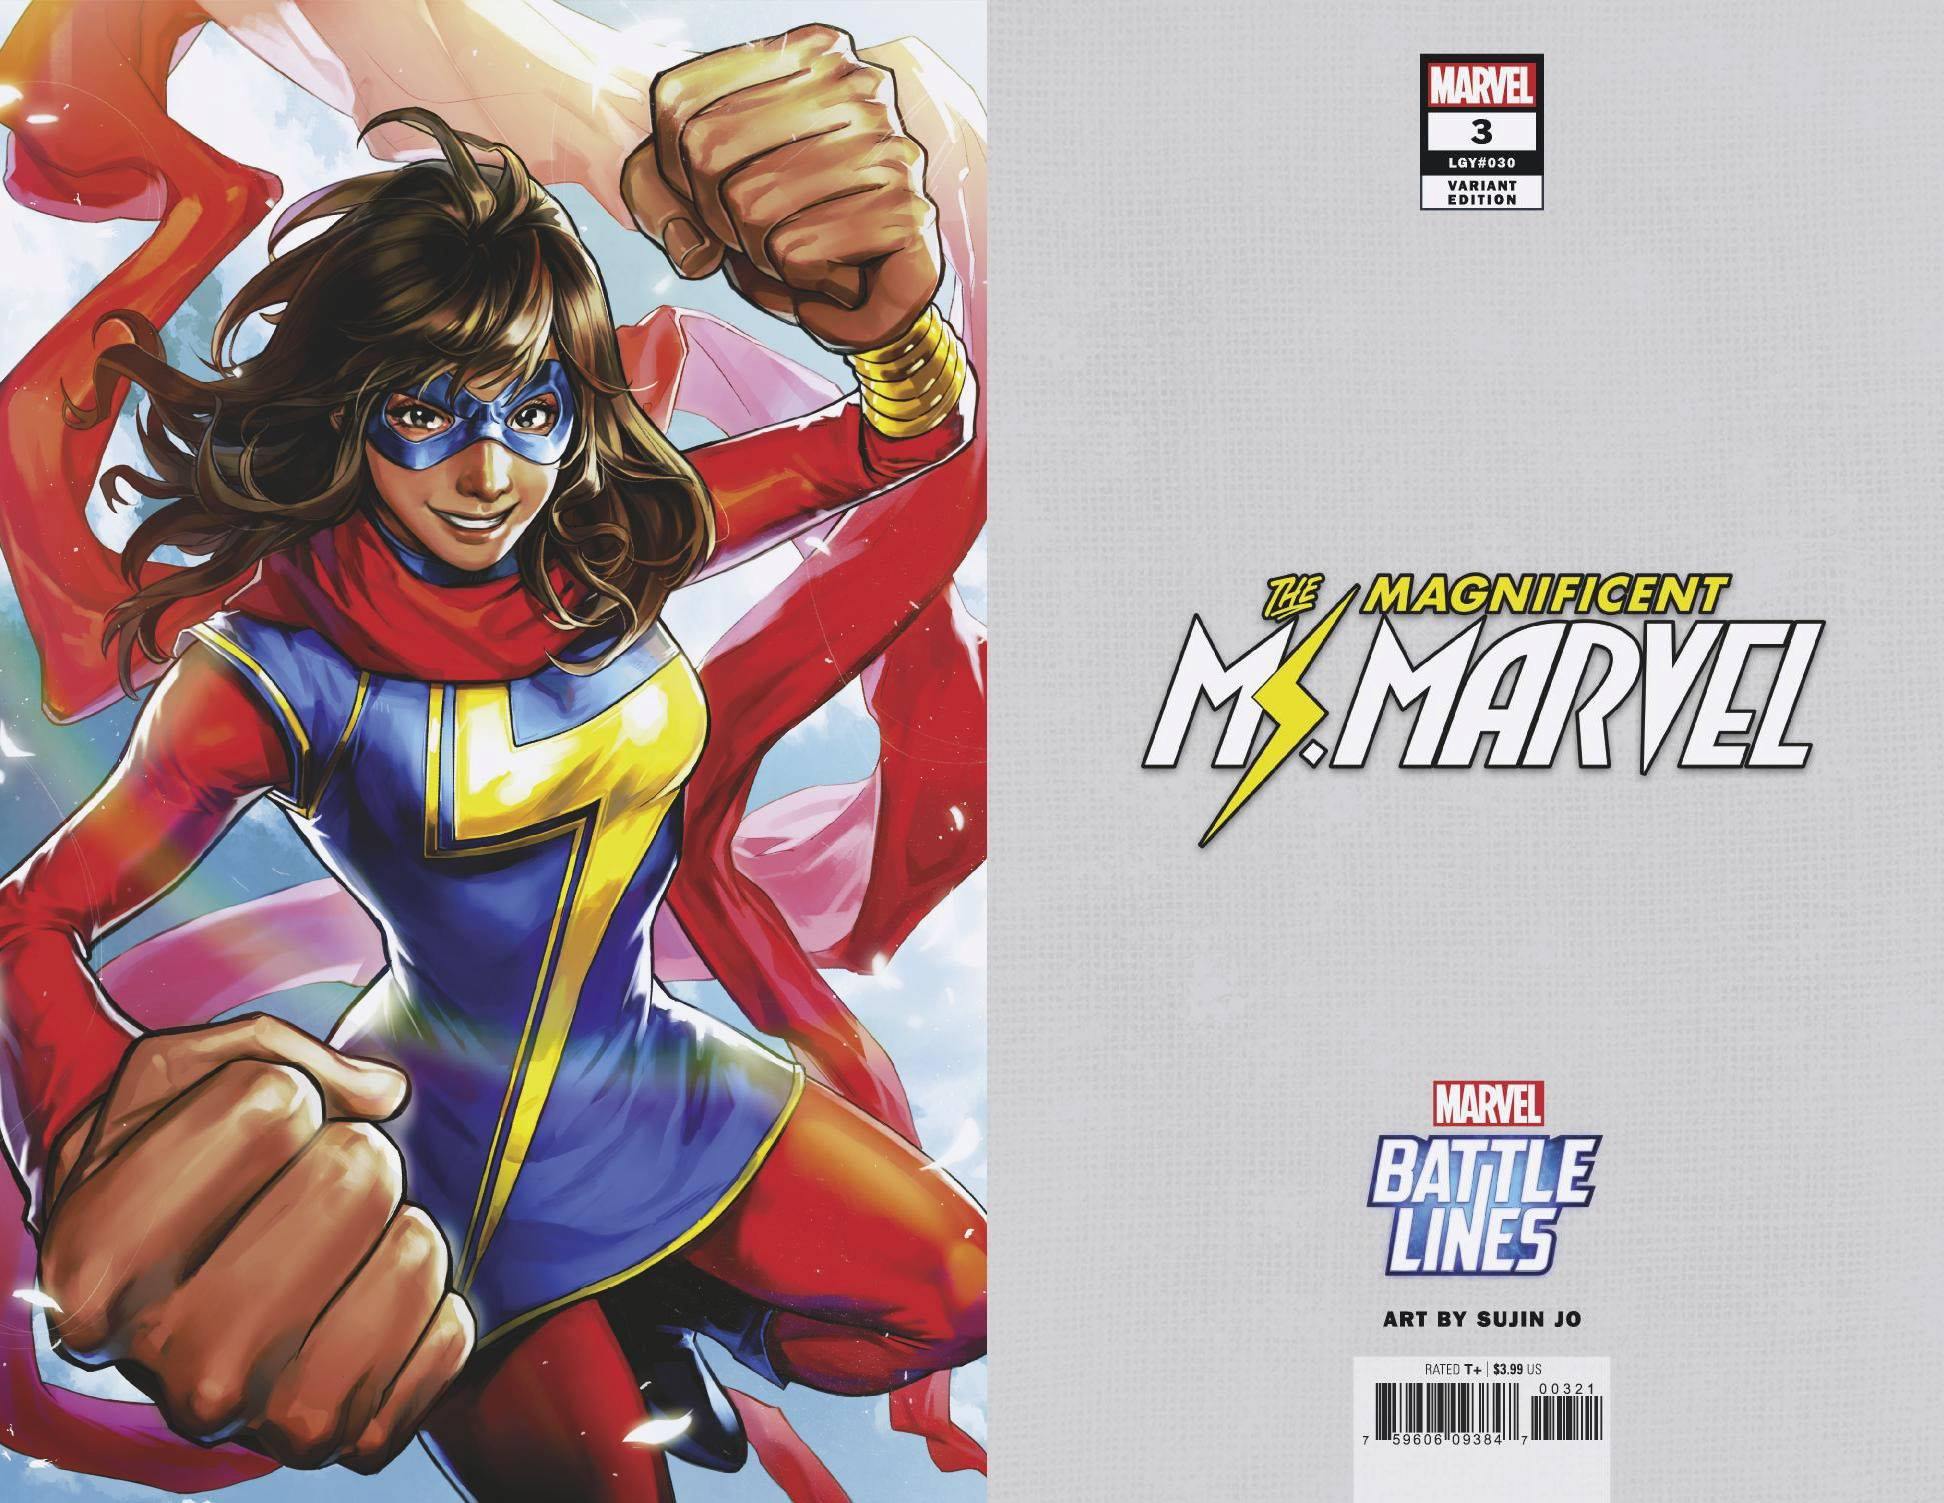 MAGNIFICENT MS MARVEL 3 SUJIN JO MARVEL BATTLE LINES VAR.jpg